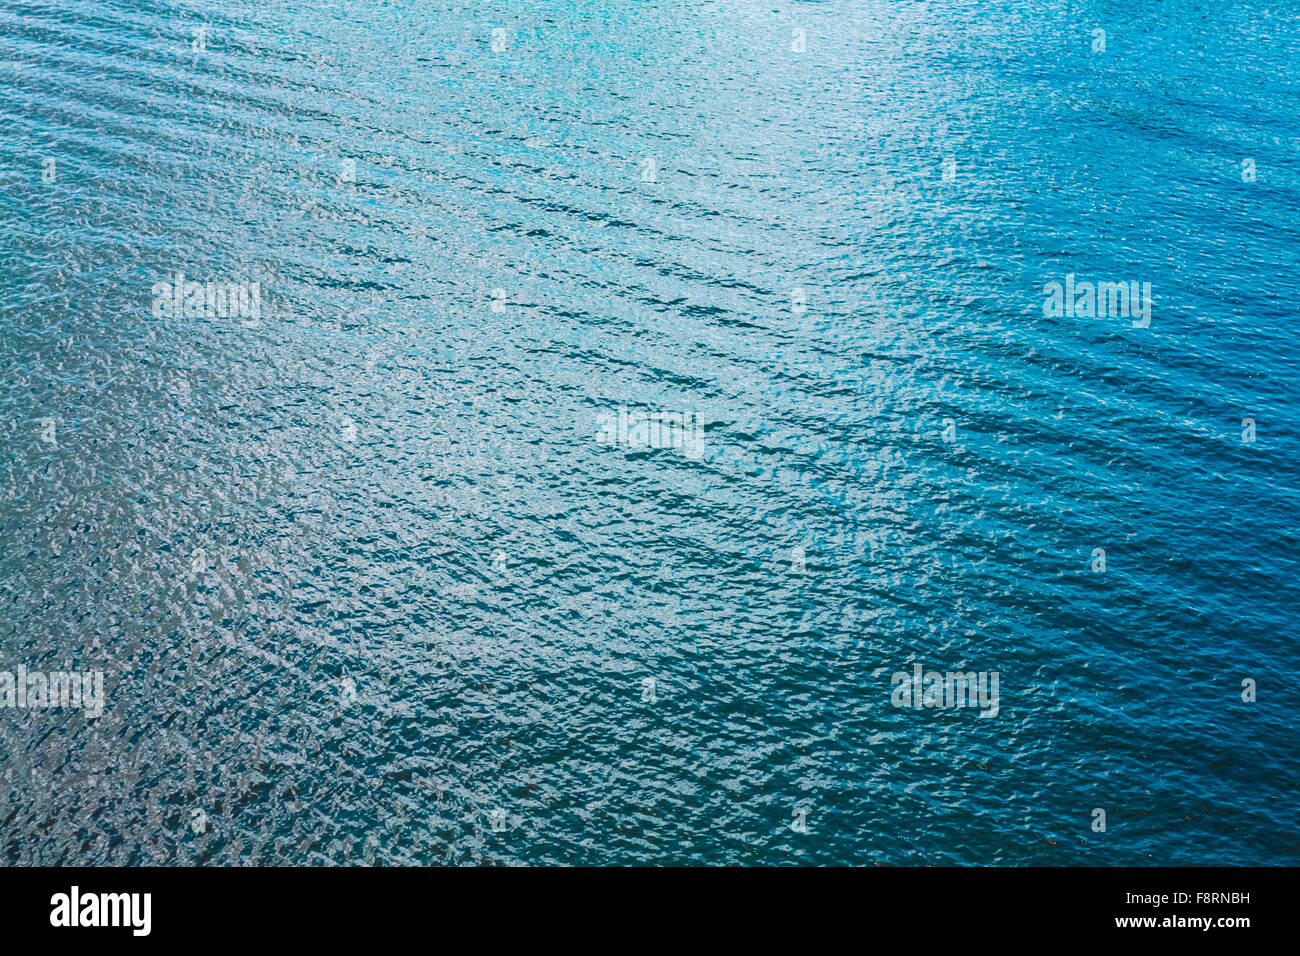 Sea Ocean River Lake Blue Ripple Surface Water Background